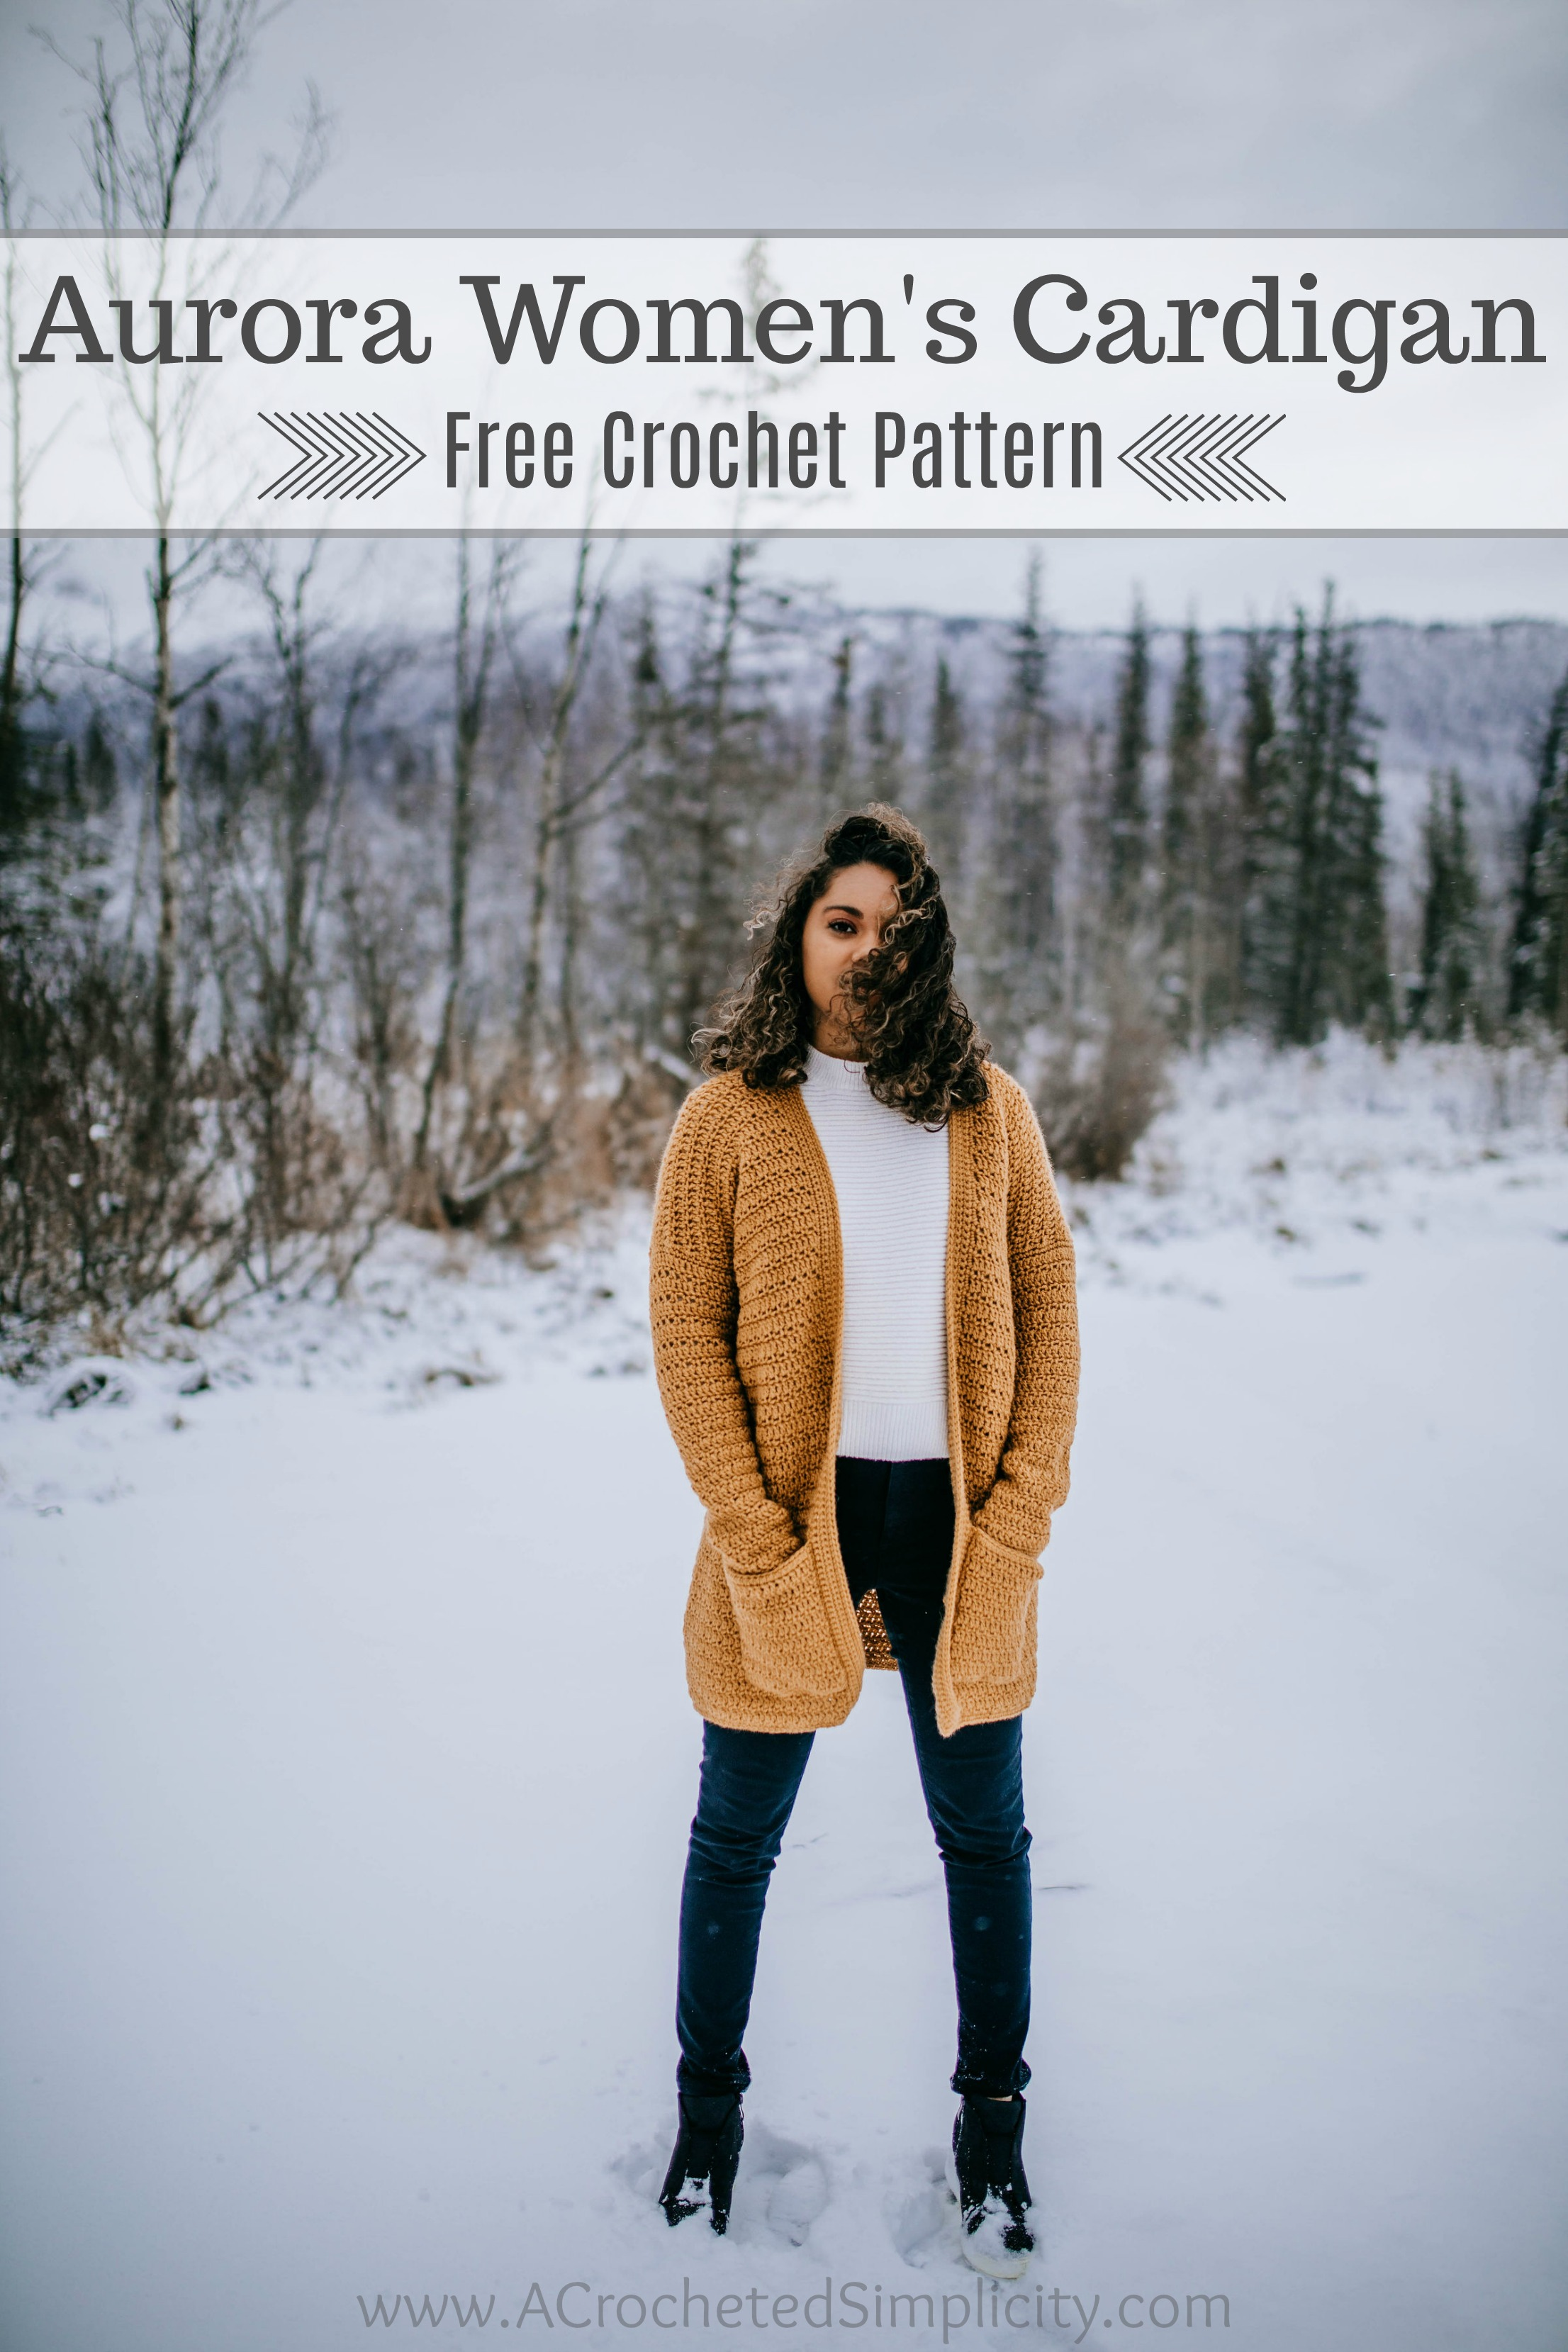 Free Crochet Cardigan Pattern - Aurora Cardigan for Women by A Crocheted Simplicity #crochetcardigan #freecrochetpattern #crochetcardiganpattern #cardiganpattern #crochetsweater